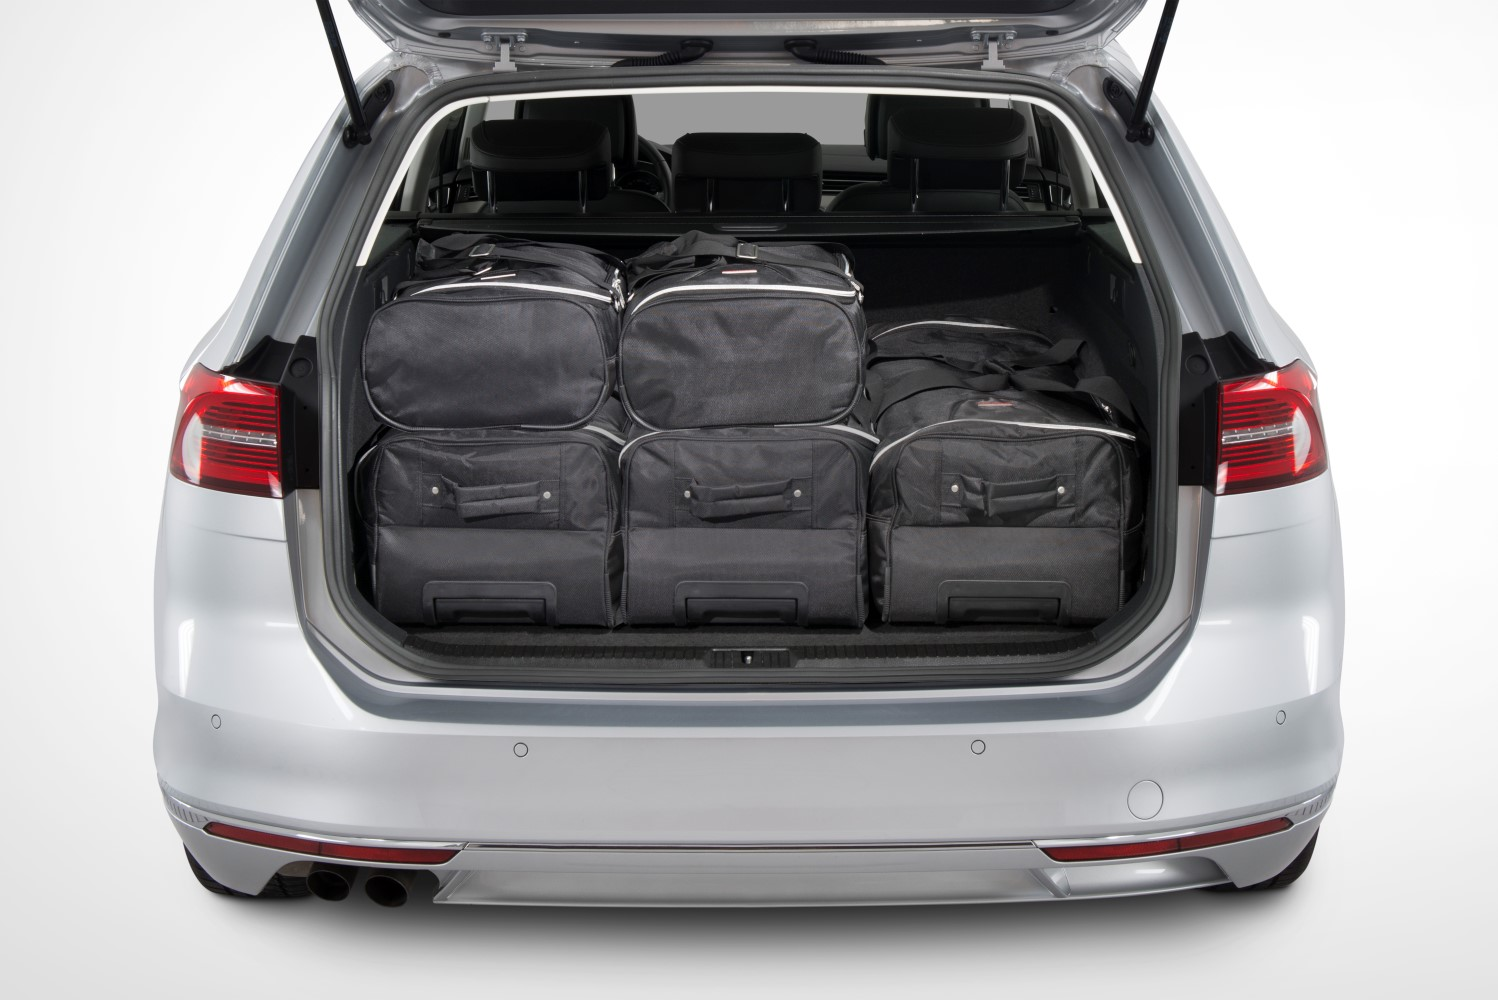 vw passat b8 variant car travel bags car. Black Bedroom Furniture Sets. Home Design Ideas